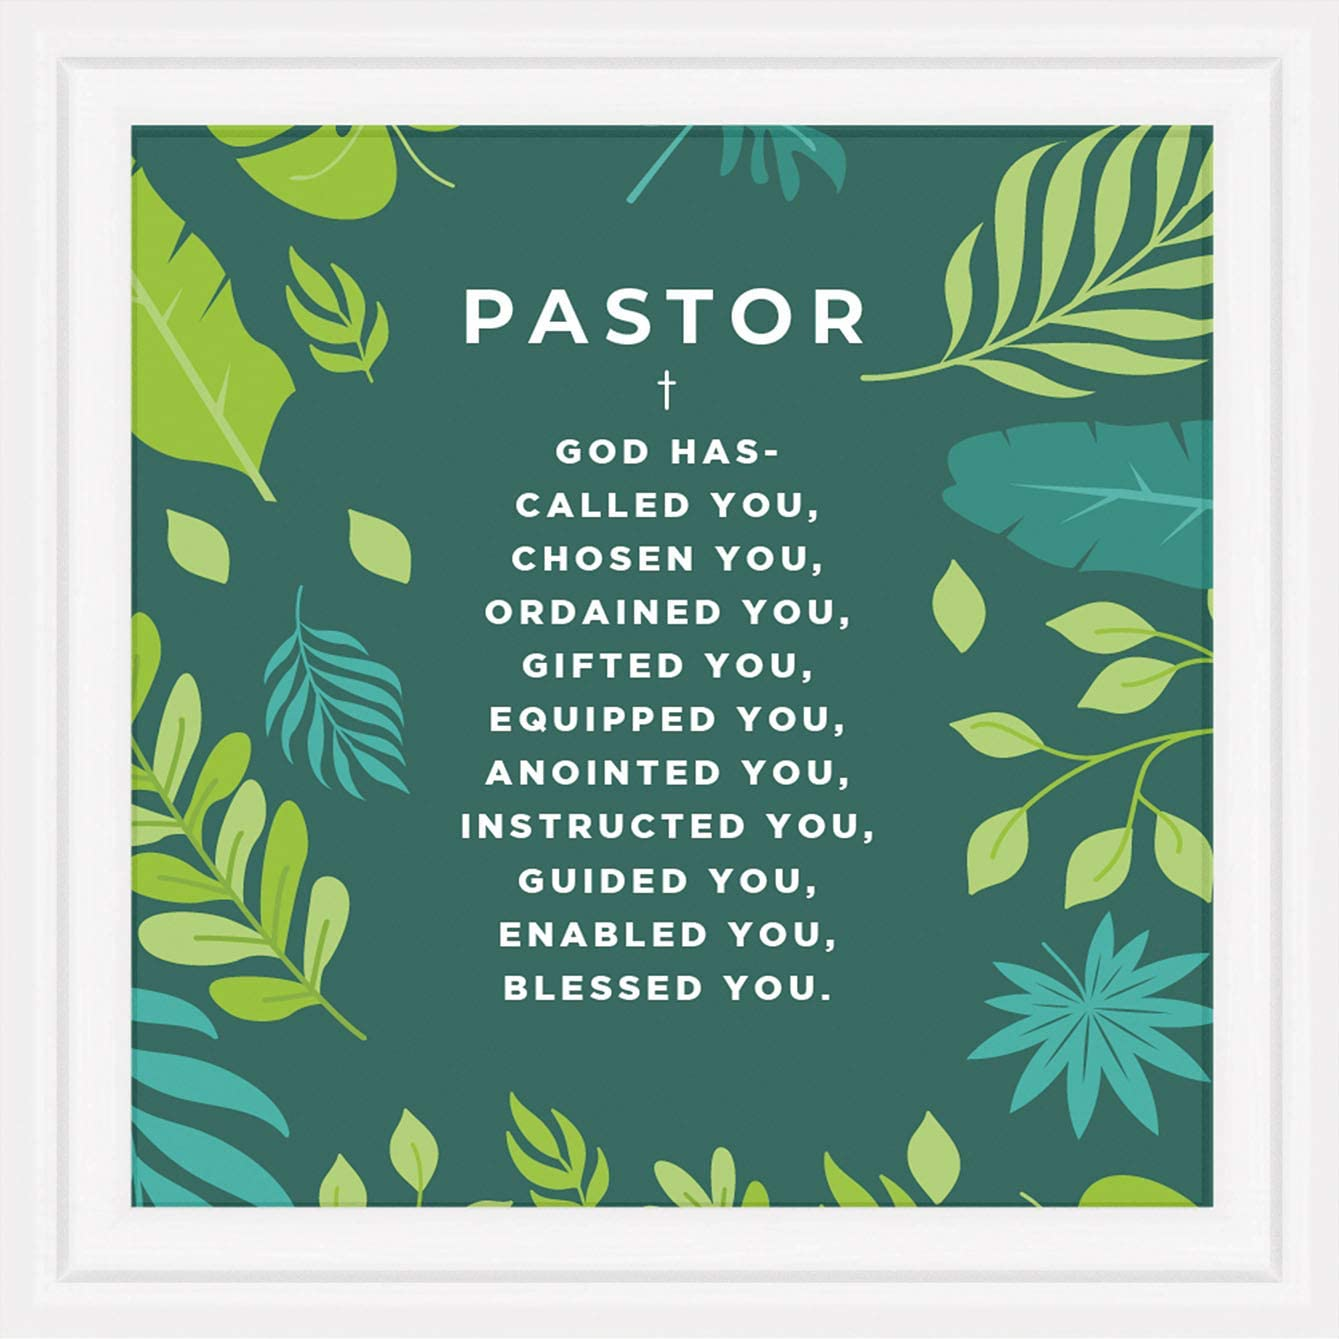 Gifts for Pastors | 7x7 Tile Artwork Ideal for Pastor | Christian Men Appreciation Gift | Special for Preachers | New or Retired Church Minister Presents | Great for Home or Church Office Decor